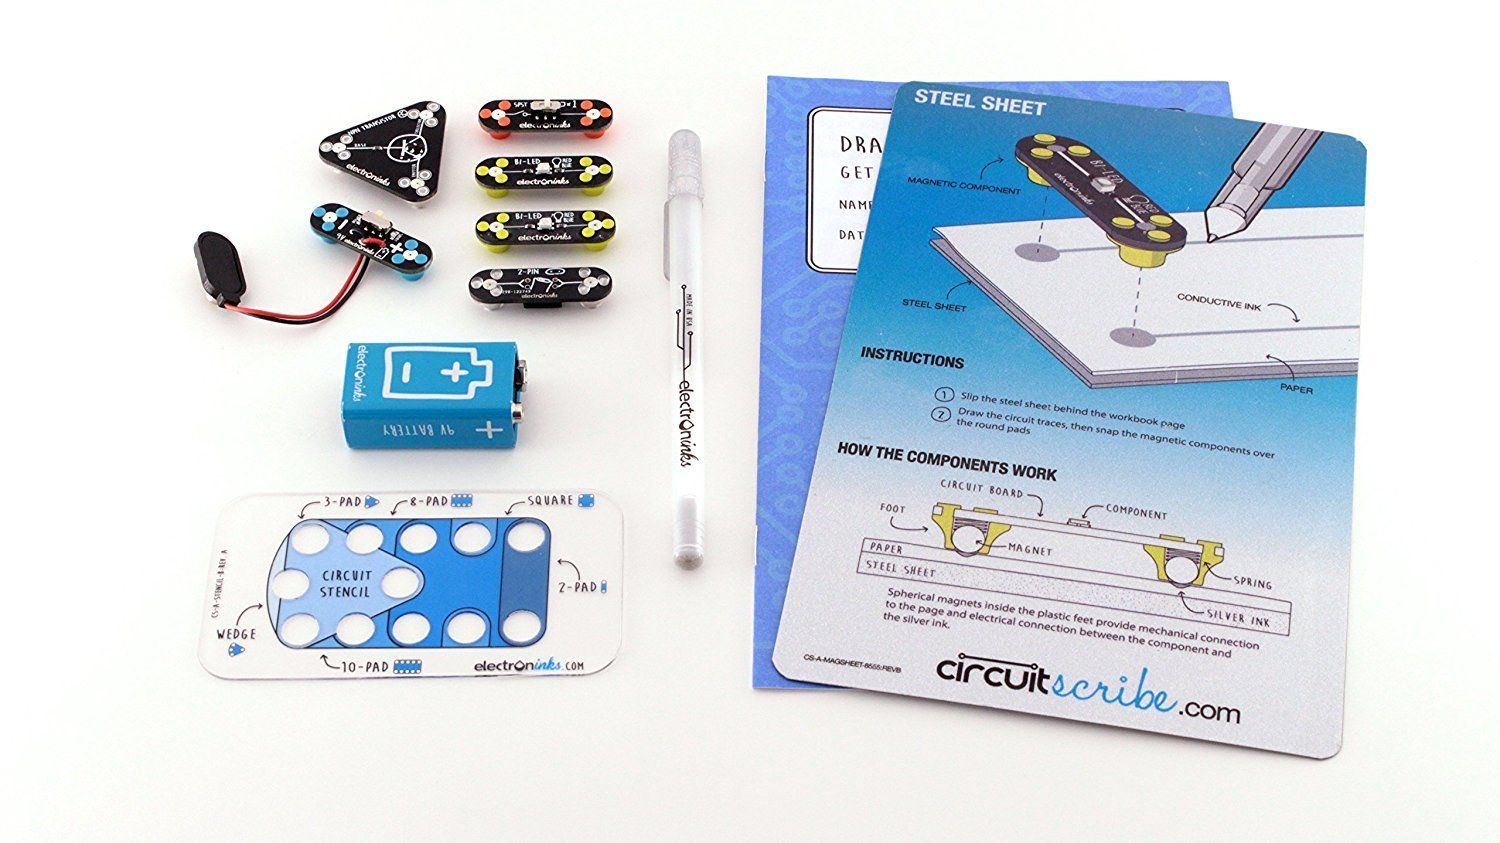 Circuit Scribe Basic Kit Includes Stem Workbook Conductive Pen Silver Ink And Everything